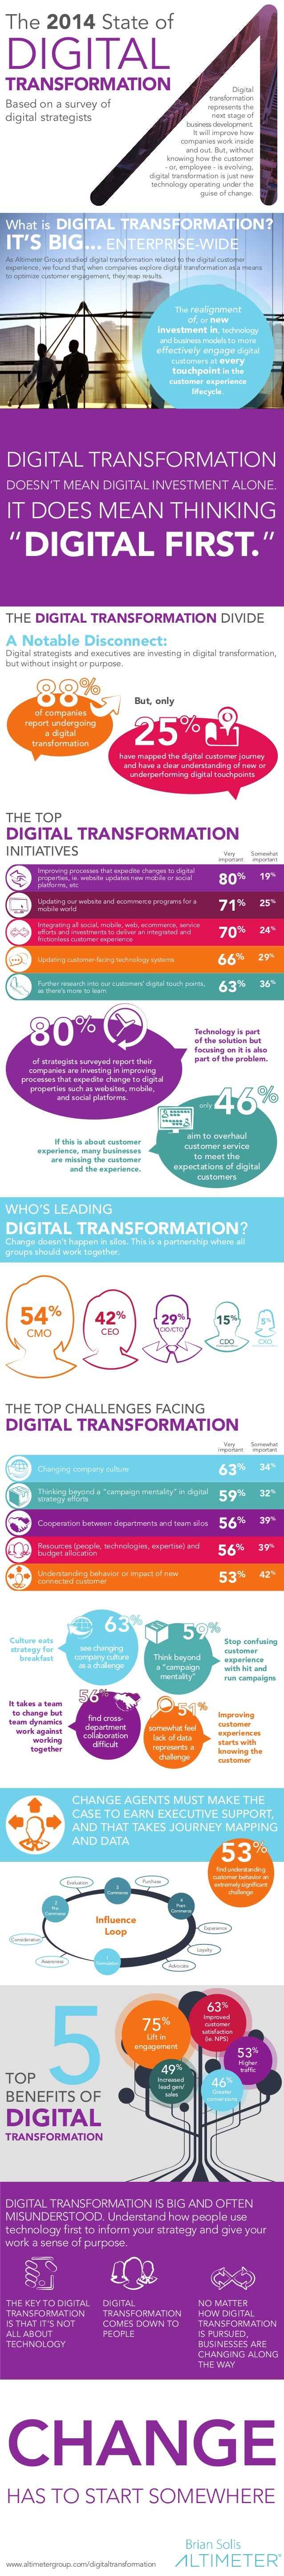 Digital  transformation  represents the  next stage of  business development.  It will improve how  companies work inside ...